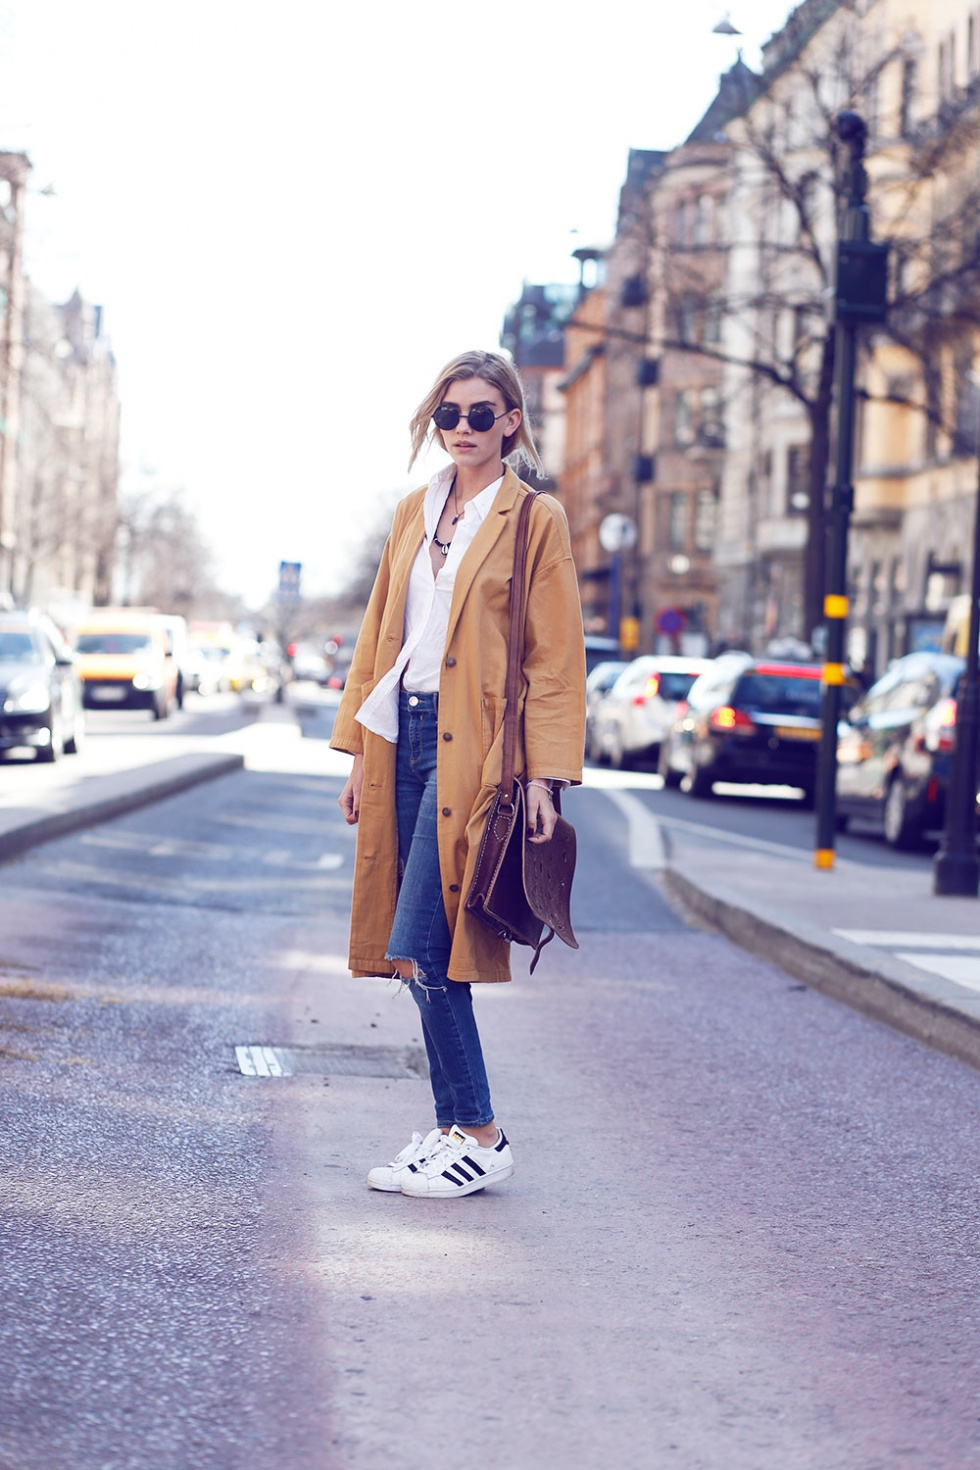 Elsa Ekman is wearing a beige Monki mac coat, distressed River Island jeans, a white Gant shirt and Adidas Superstar sneakers